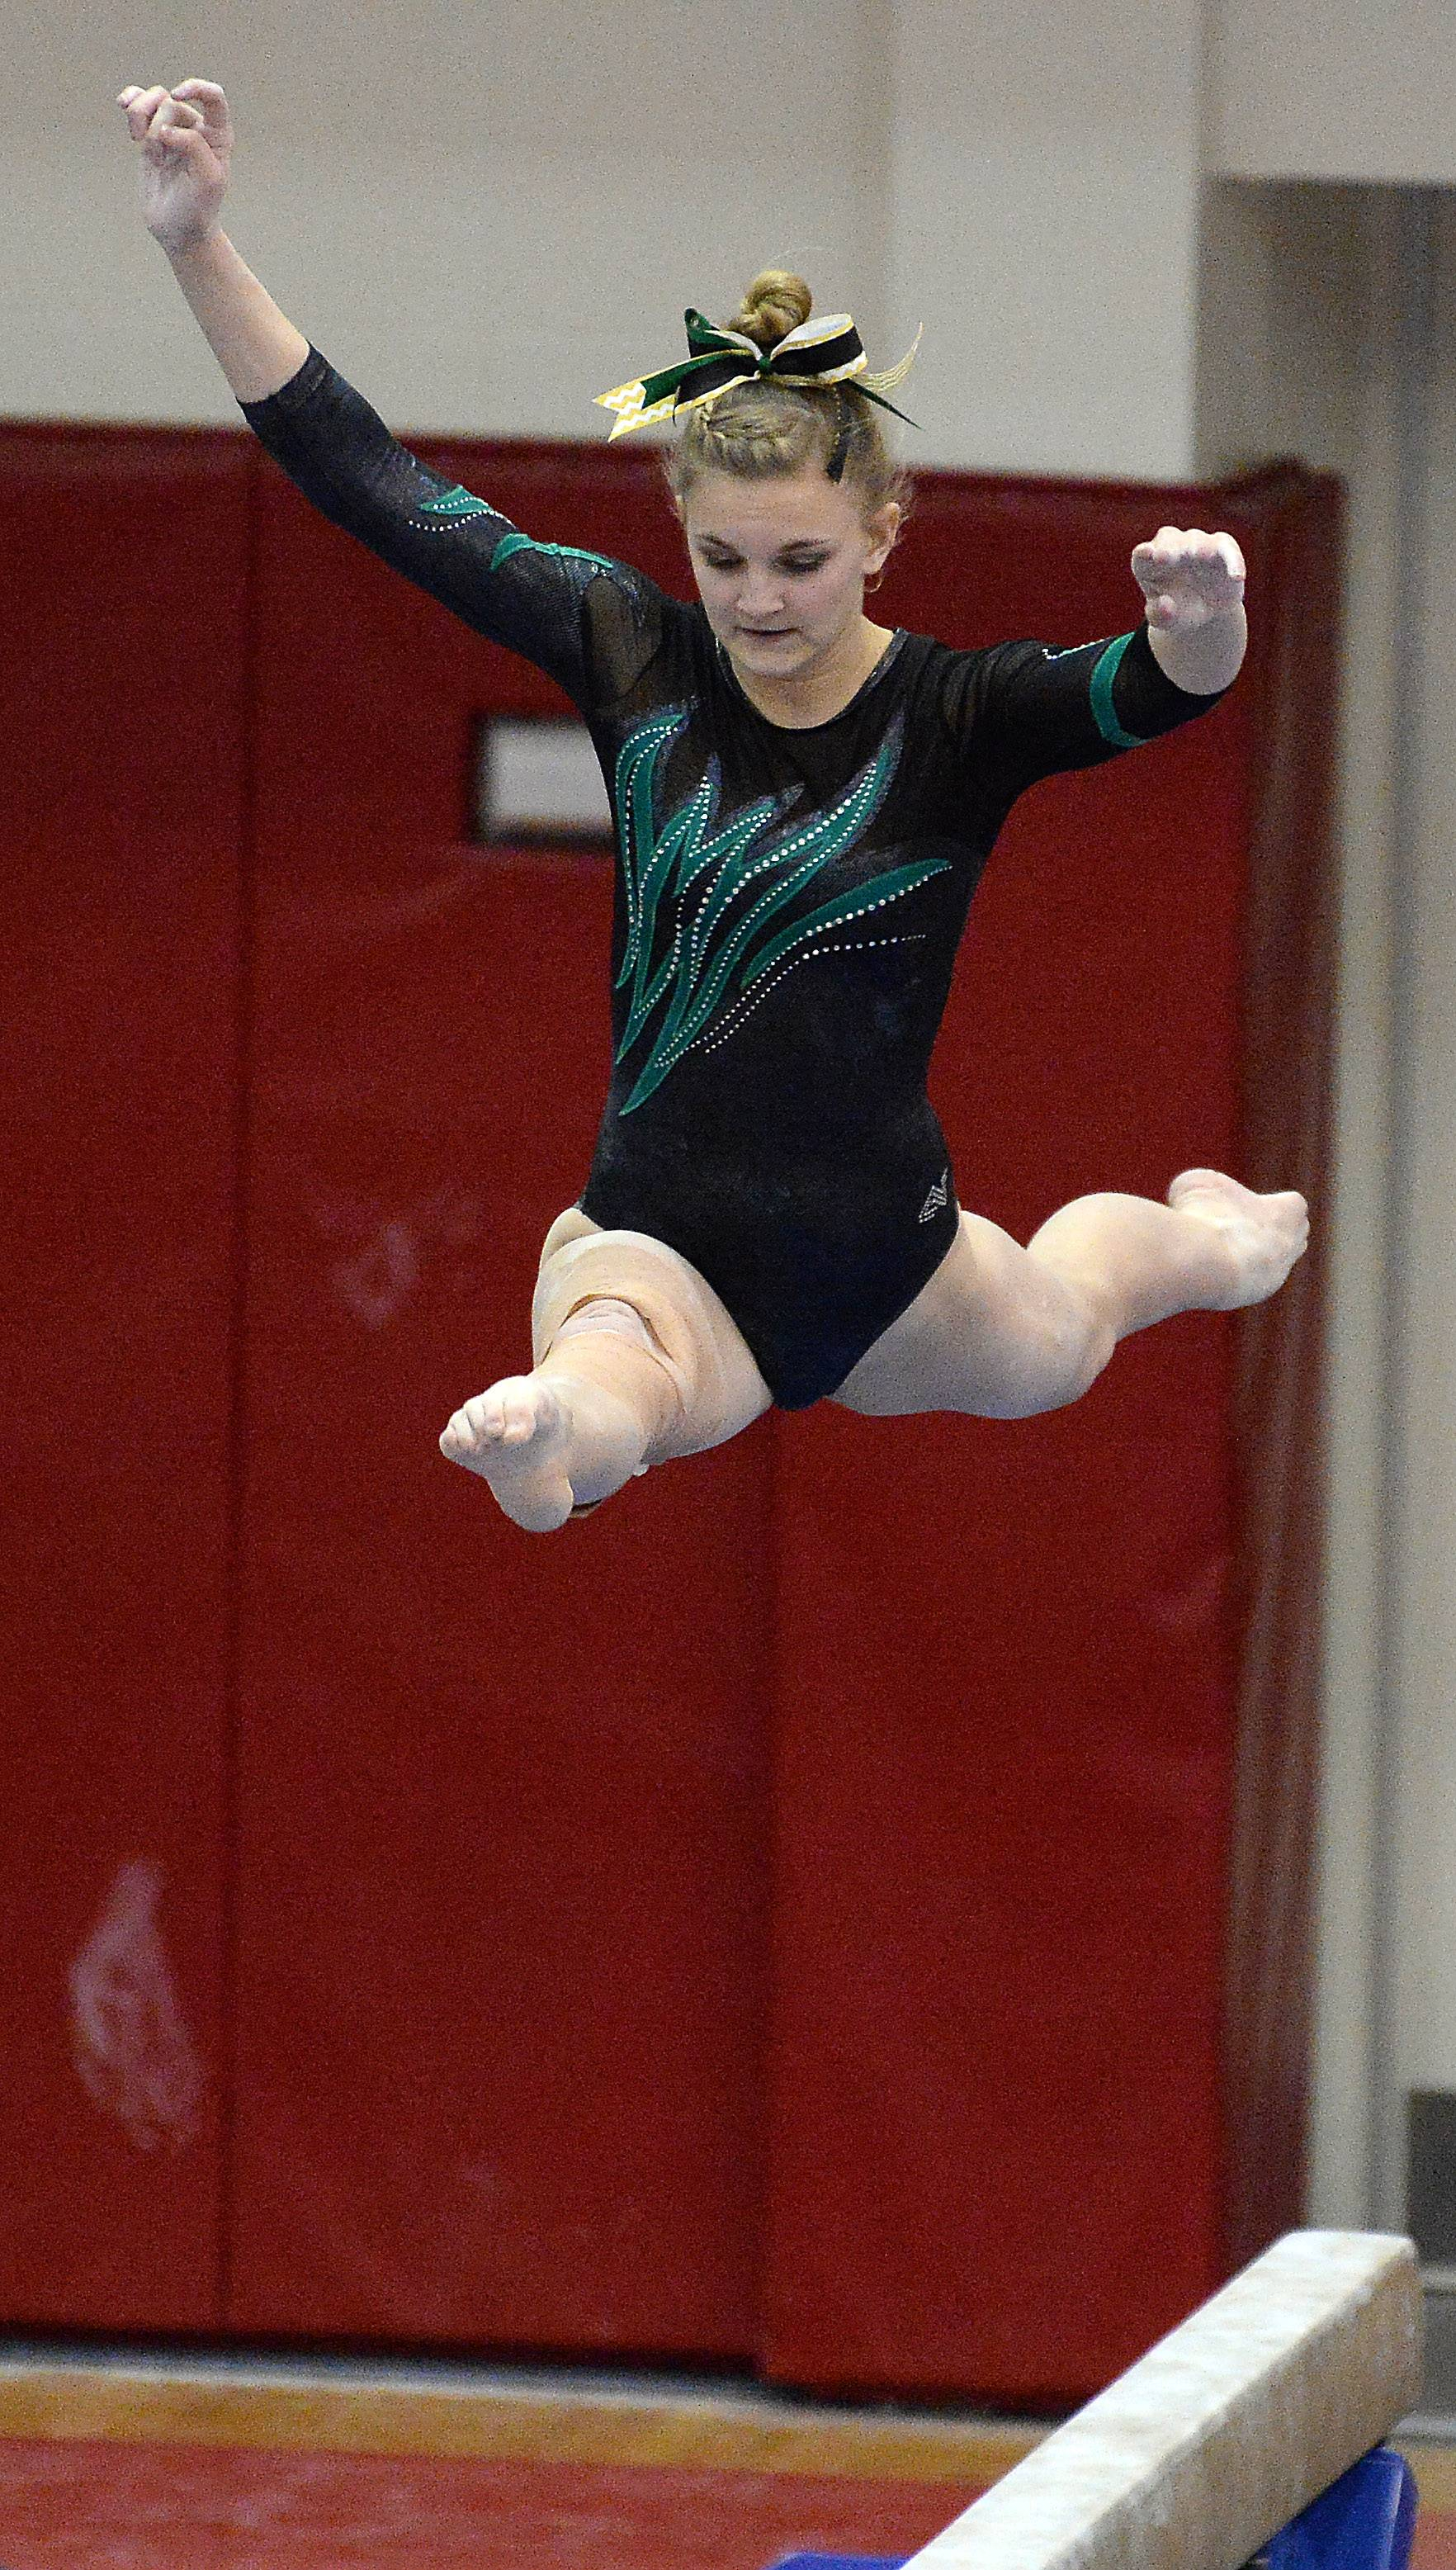 Sydney Plichta of Fremd performs on the beam.